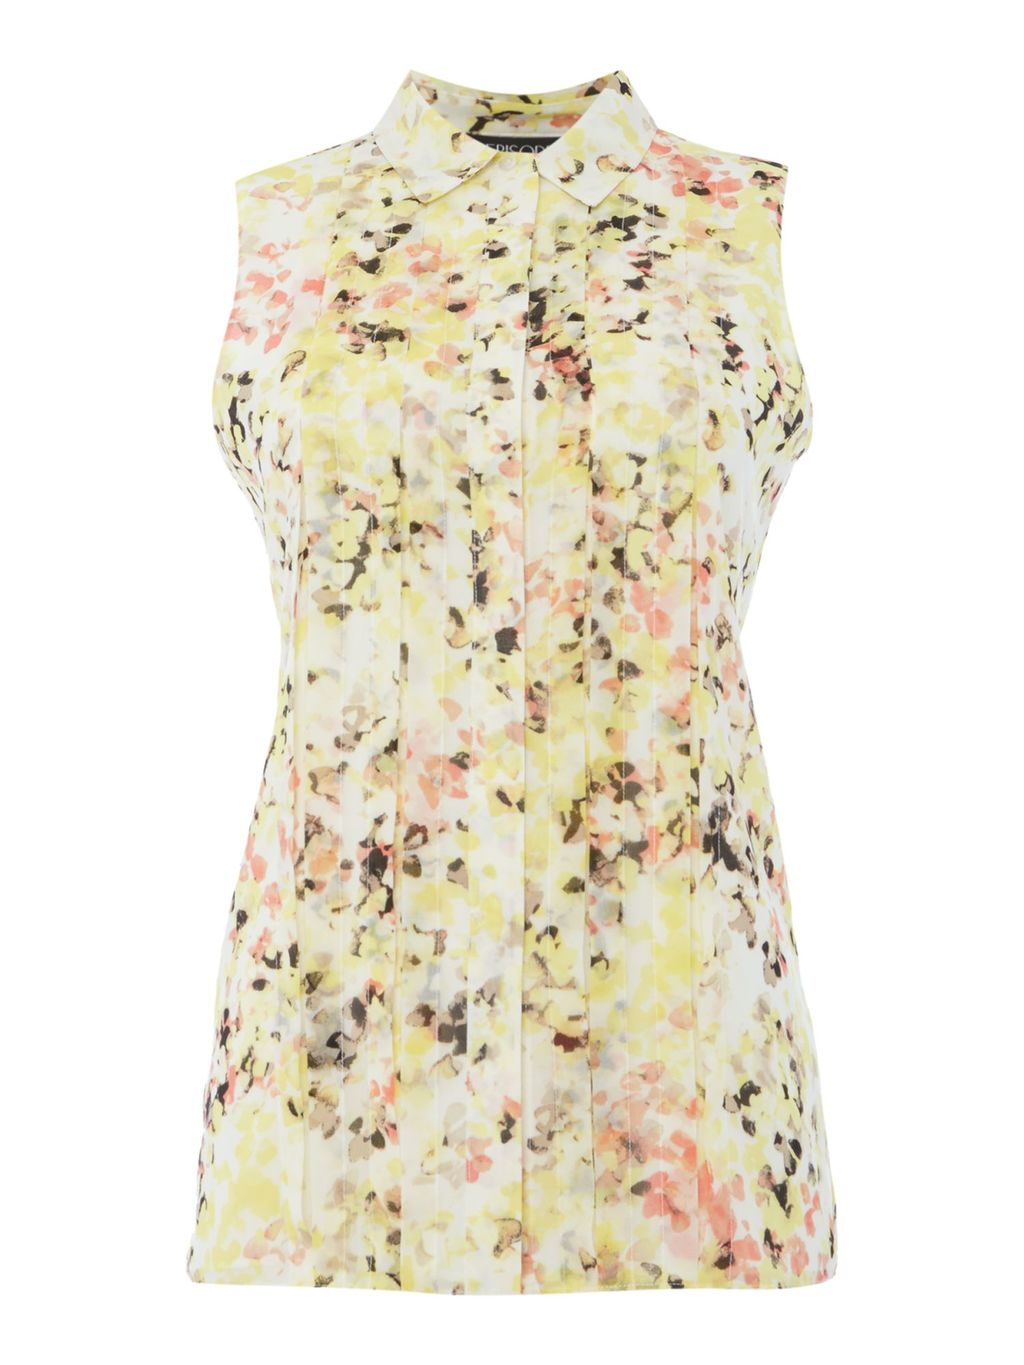 Sleevless Floral Print Top, Multi Coloured - neckline: shirt collar/peter pan/zip with opening; sleeve style: sleeveless; style: blouse; secondary colour: pink; predominant colour: primrose yellow; occasions: casual, creative work; length: standard; fibres: polyester/polyamide - 100%; fit: body skimming; sleeve length: sleeveless; texture group: cotton feel fabrics; pattern type: fabric; pattern: patterned/print; multicoloured: multicoloured; season: s/s 2016; wardrobe: highlight